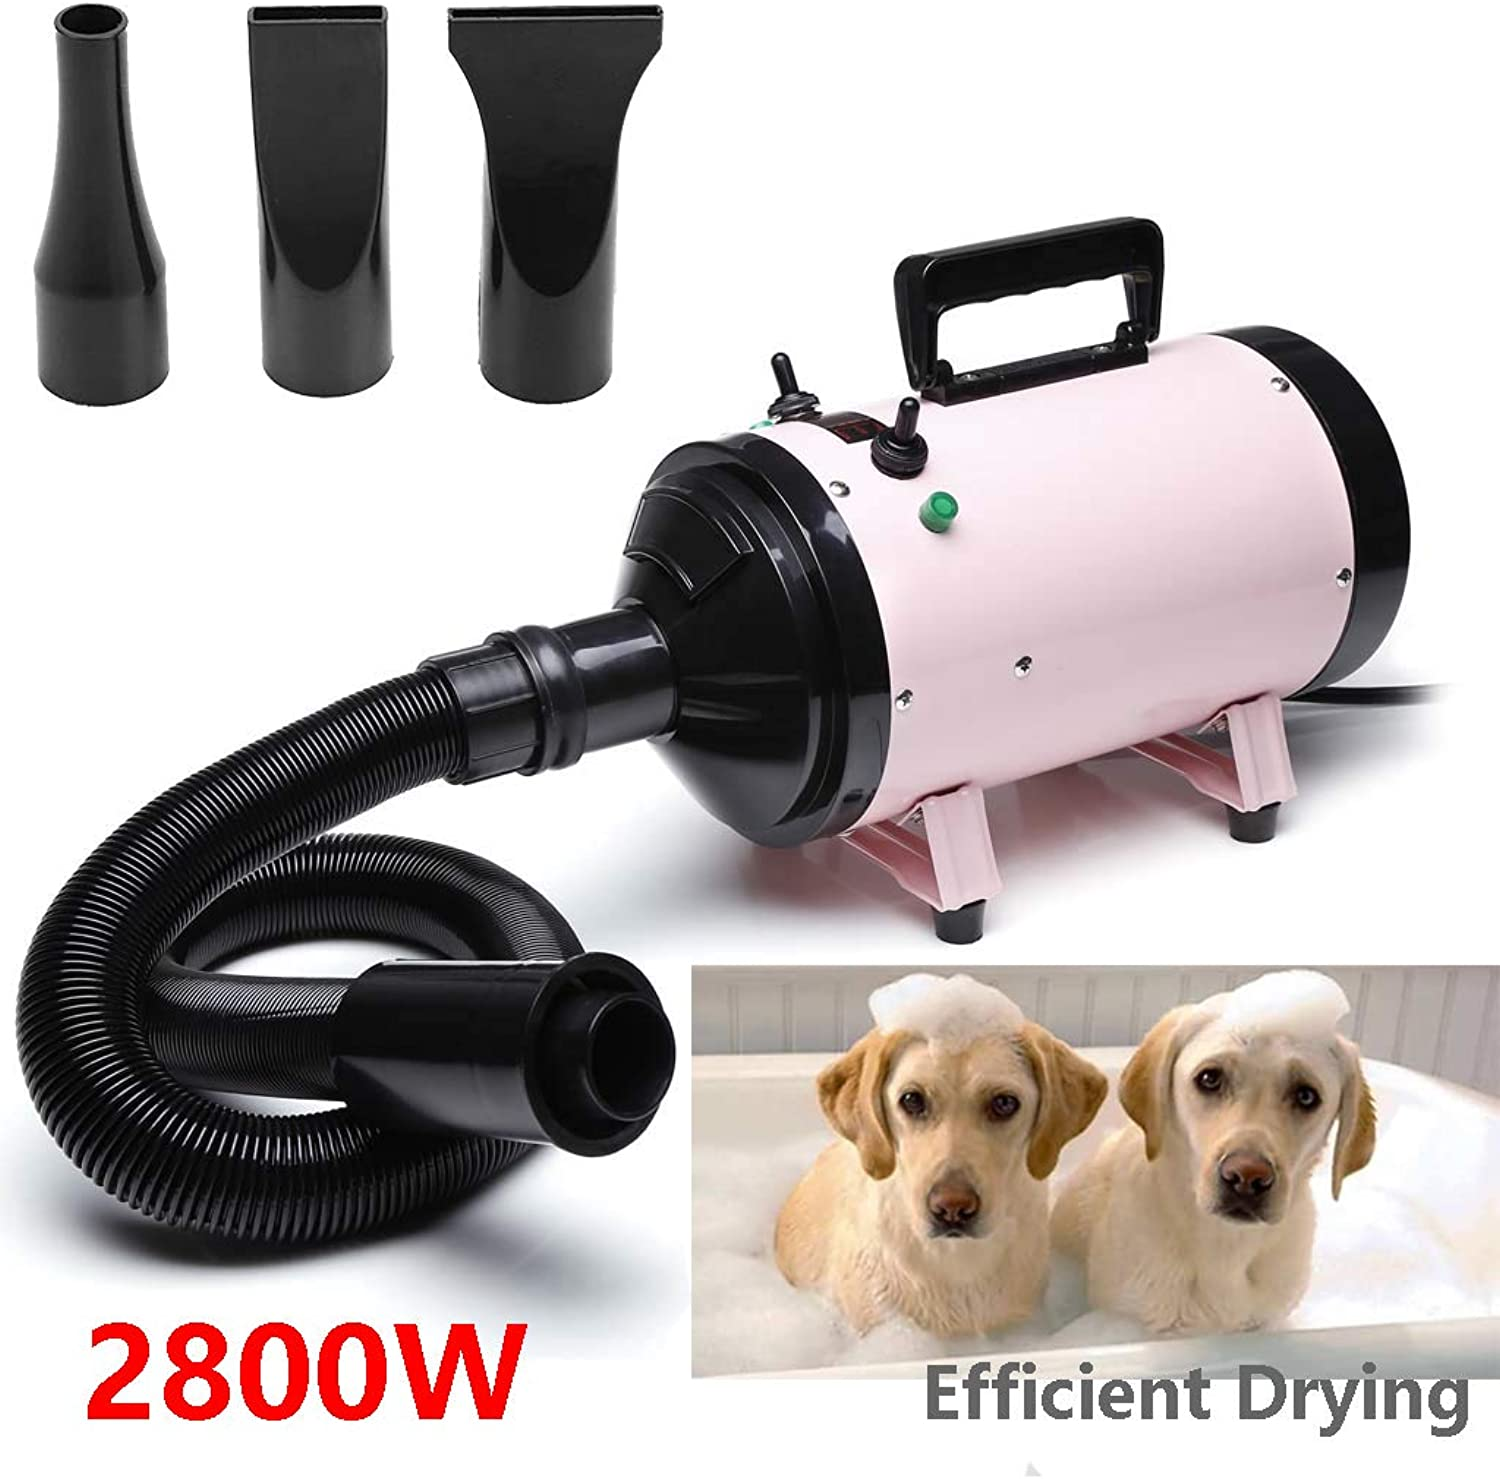 Cat Grooming Blaster Blower Pet Dog Hair Fur Dryer Hairdryer Heater Low Noise 2800W, 2Stage Speeds, With 3 Nozzles and a Extension Hose